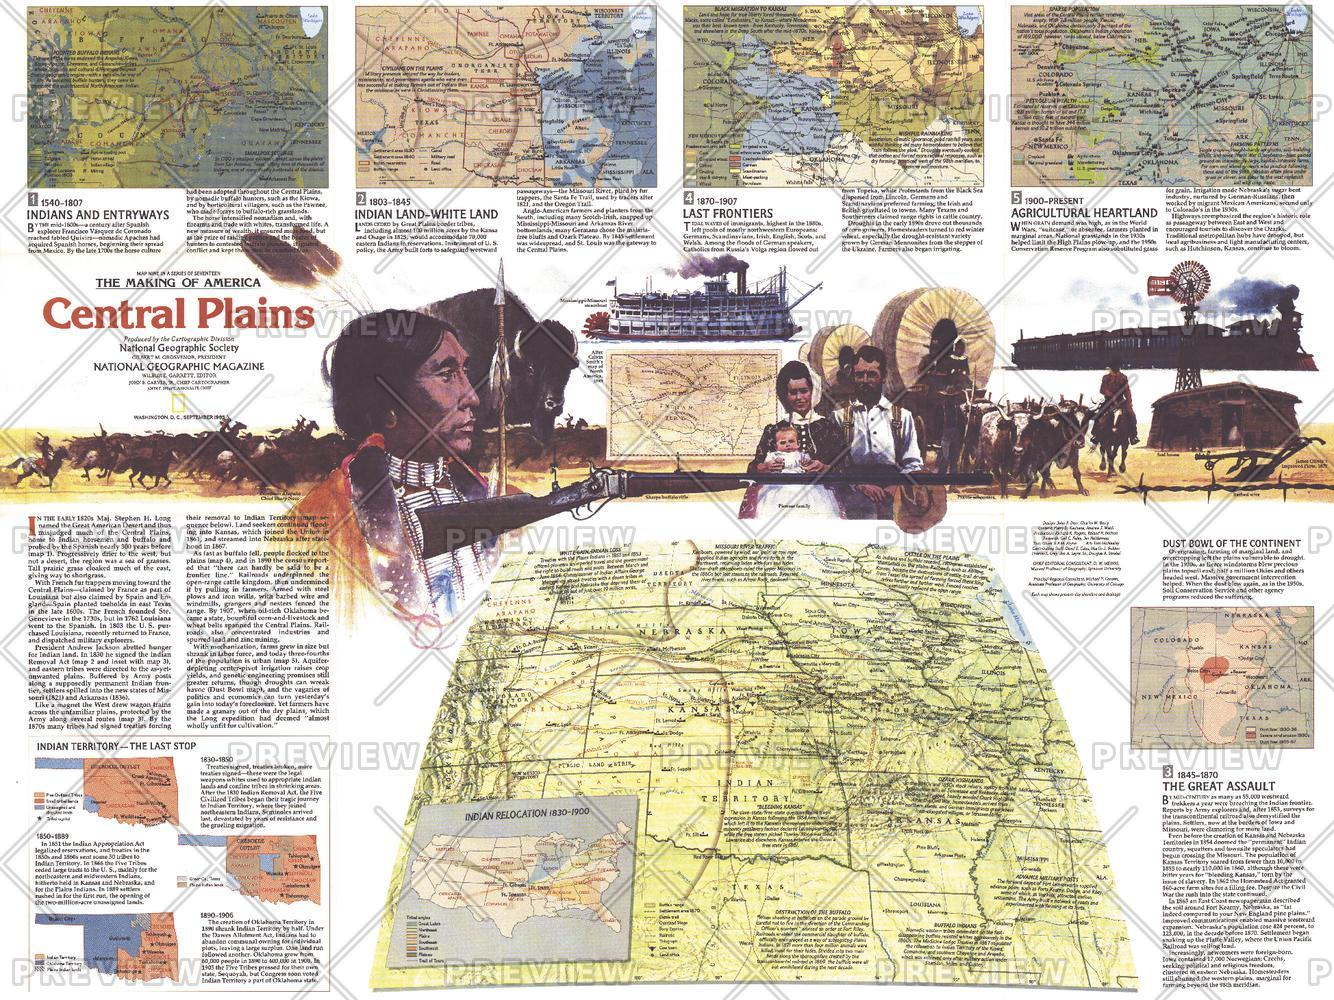 Central Plains Map Side 2 - Published 1985